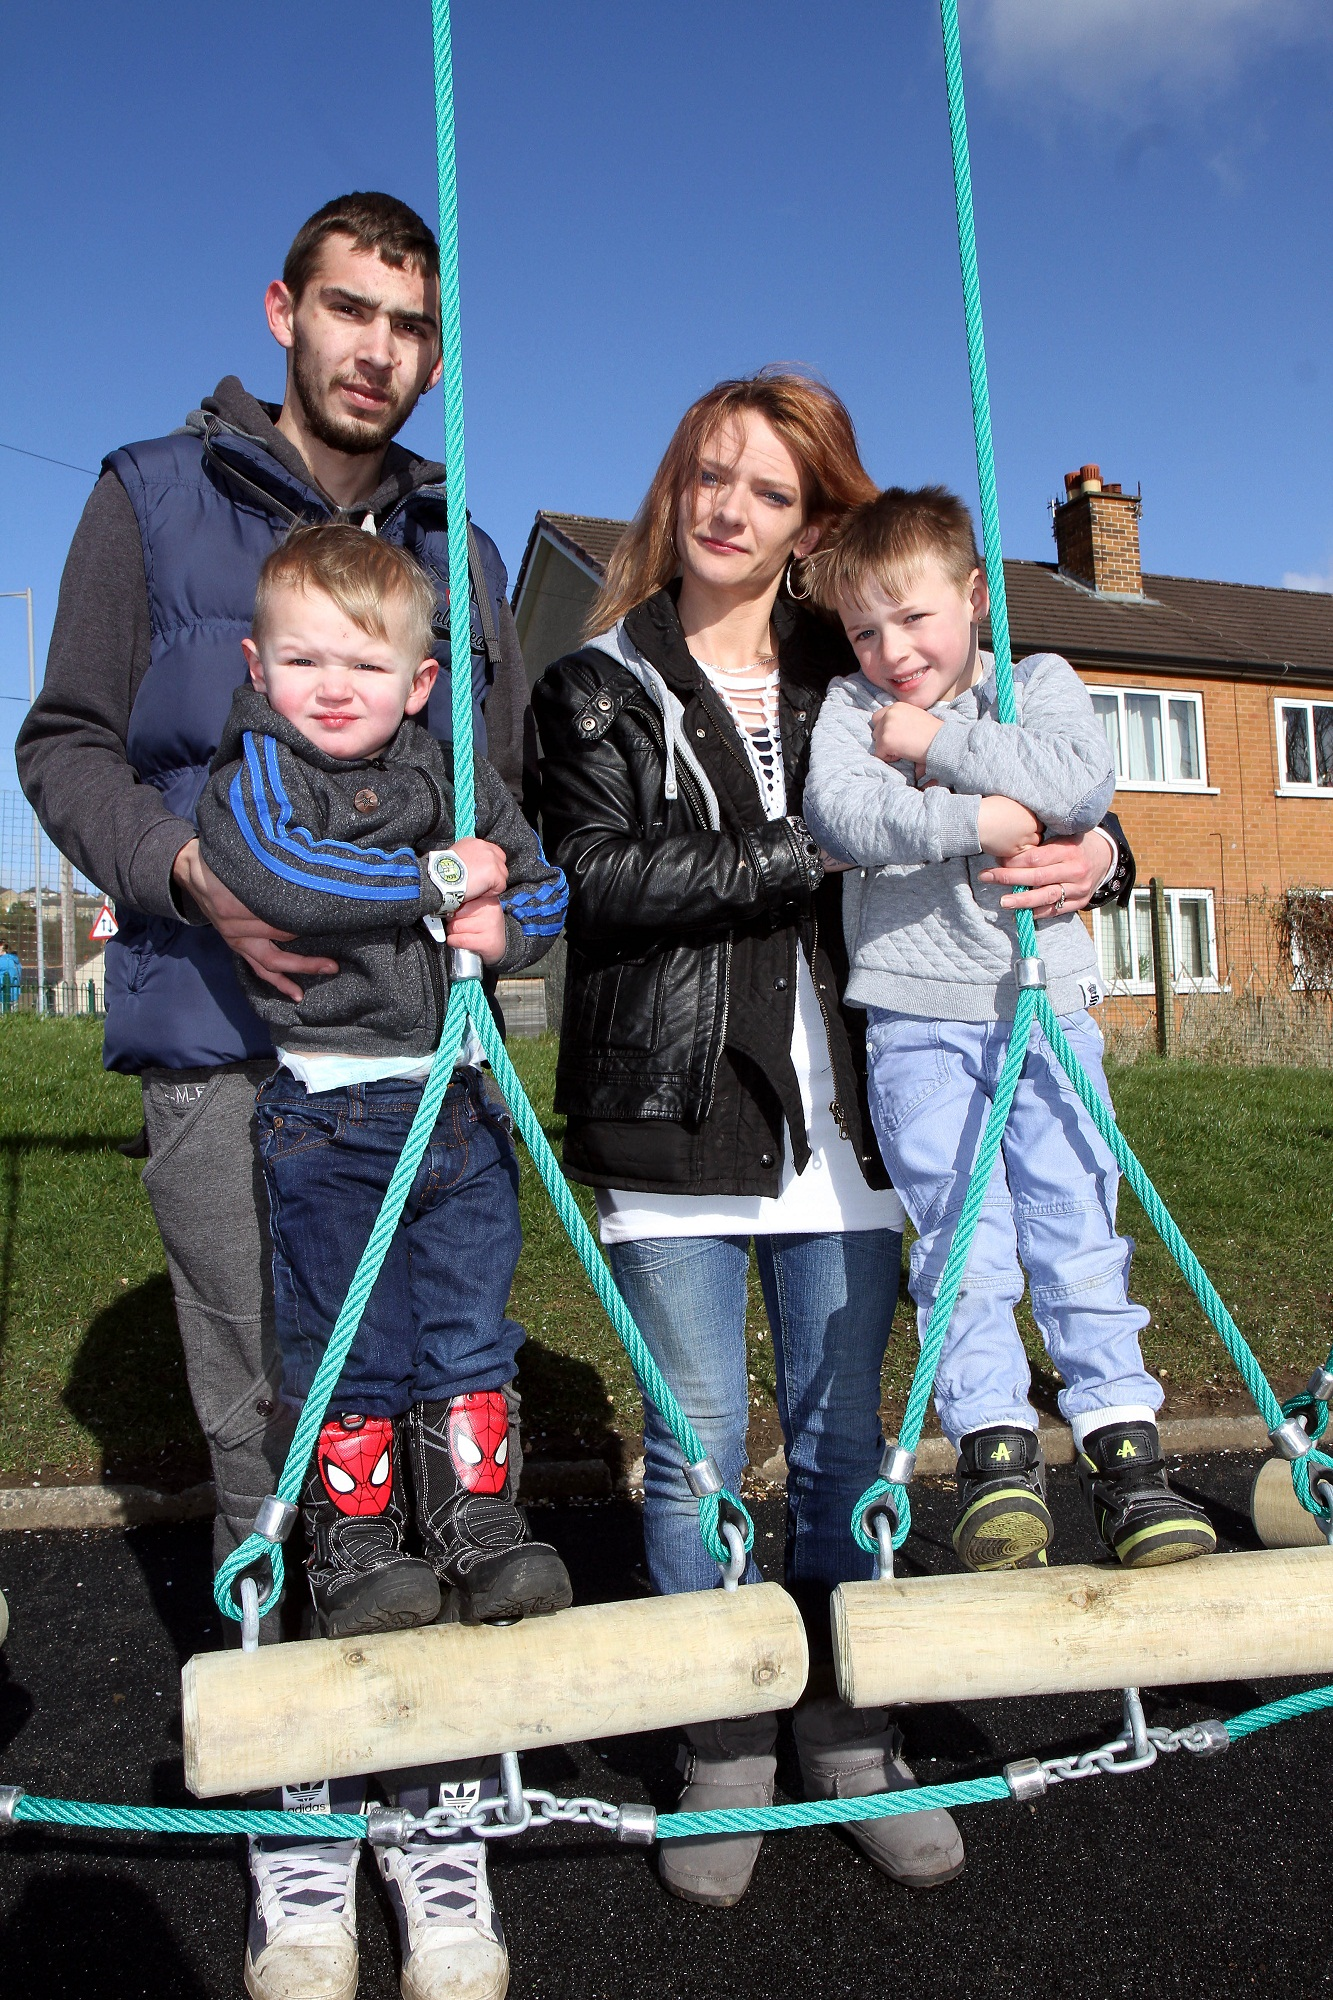 Riley Turner's mother, Sharon Smith, and partner, Guy Earwaker, with children Tyler Earwaker and Mackenzie Turner, at the opening of a Trim Trail at Riley's former school, Worth Valley Primary, in his memory